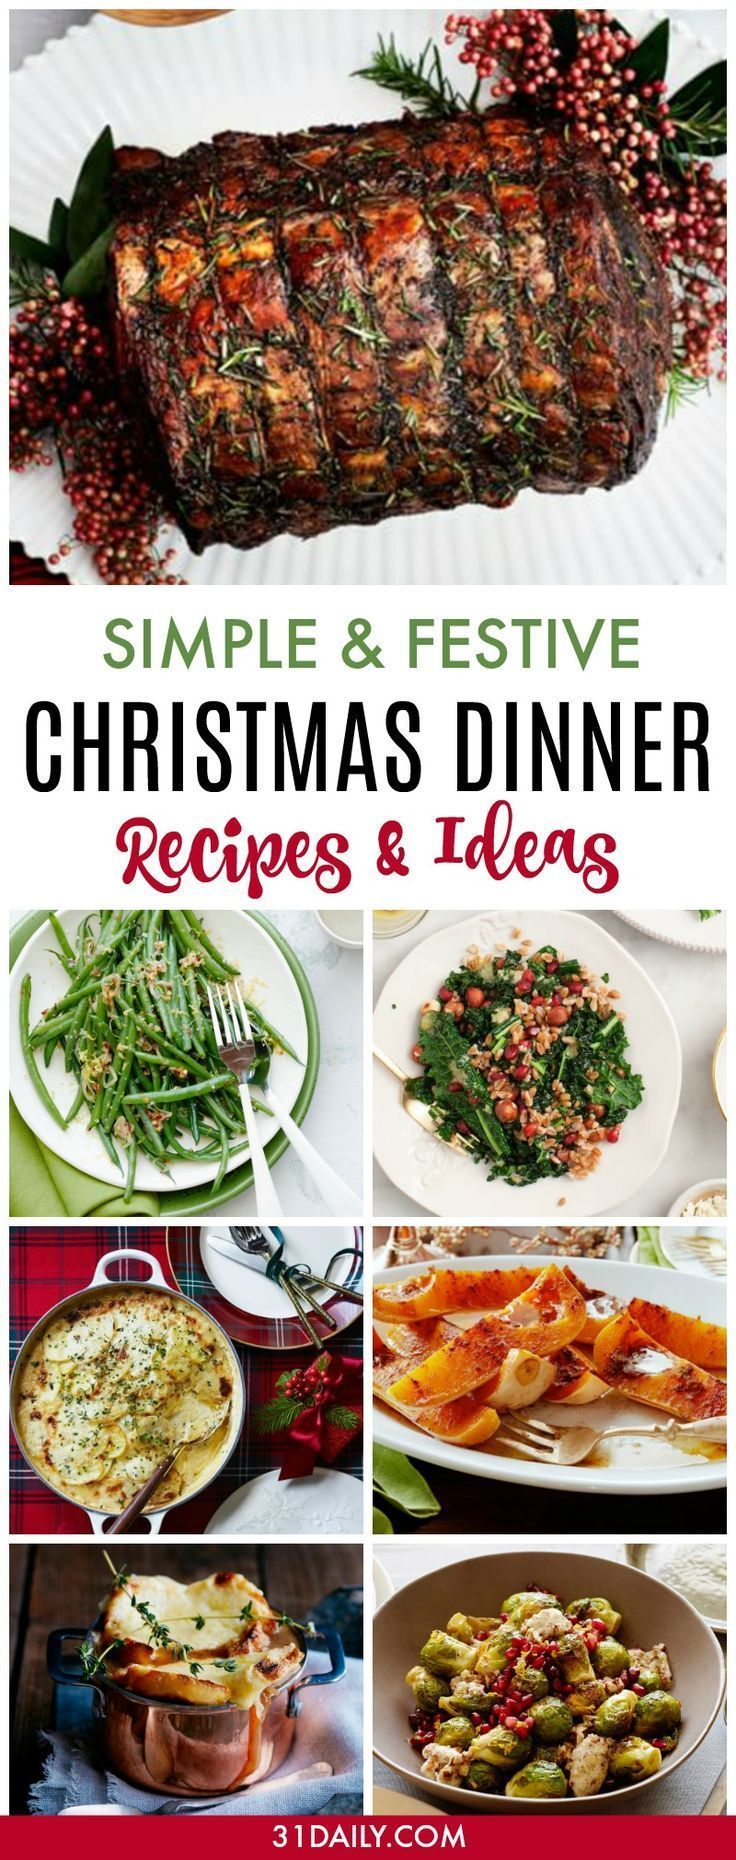 Simple and Festive Christmas Dinner Recipes - 31 Daily